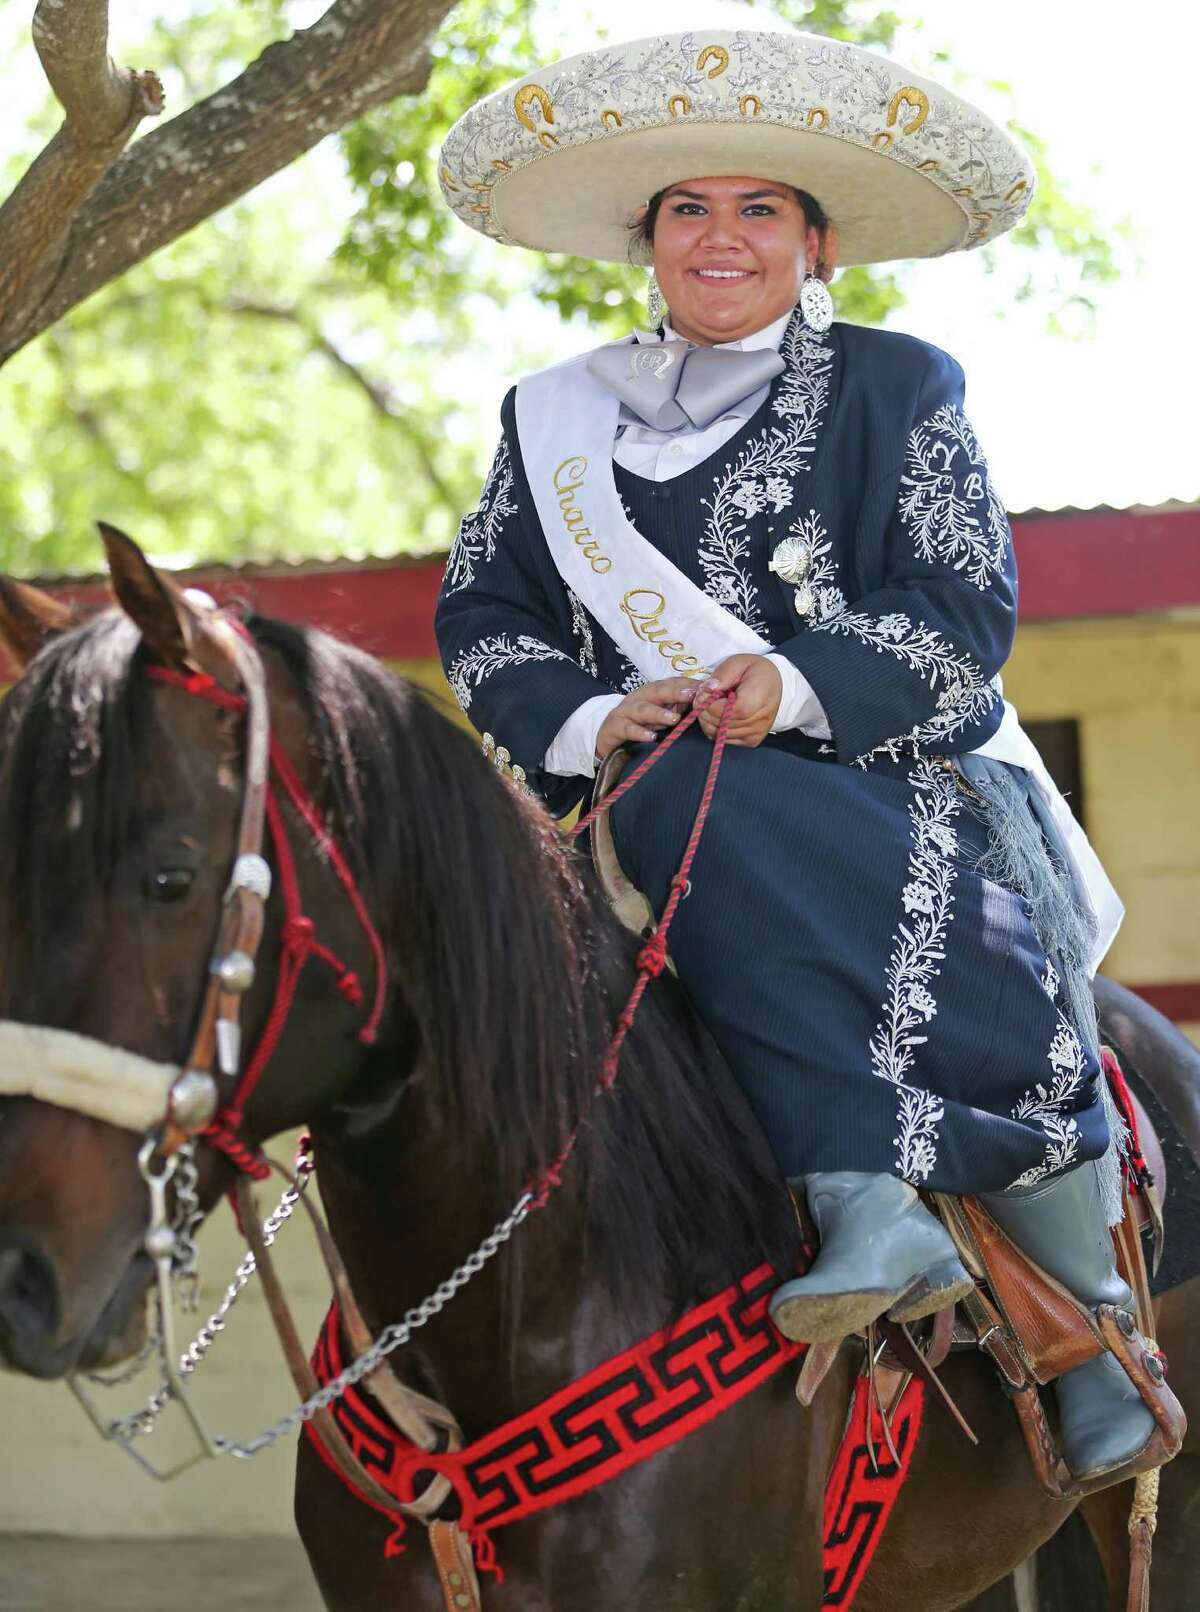 Charro Queen Yazmin Bernal, 17, addressed the crowd from horseback during the event, put on by the San Antonio Charro Association to showcase Mexico's cowboy and cowgirl traditions and their connection to the city.